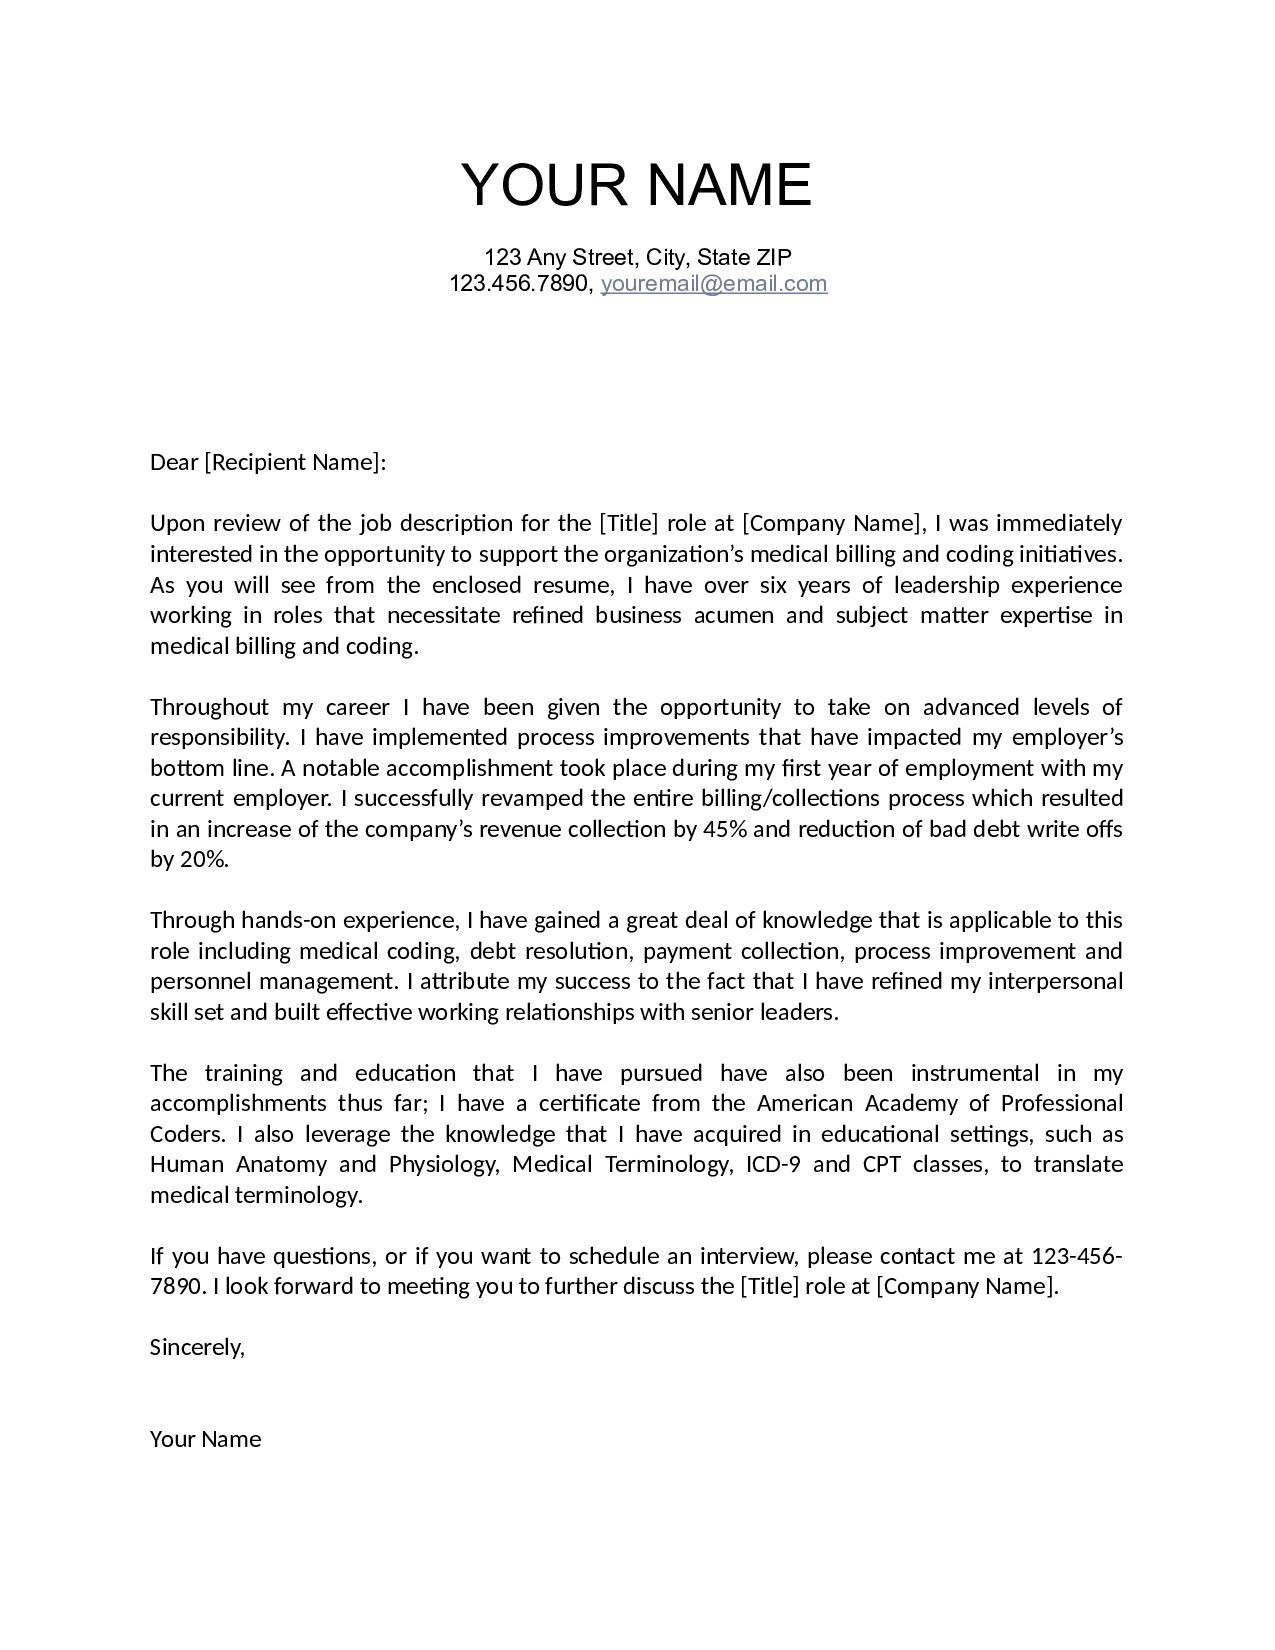 Job Application Cover Letter Template Word - Cover Letter Examples for Job Application New Cover Letter Examples